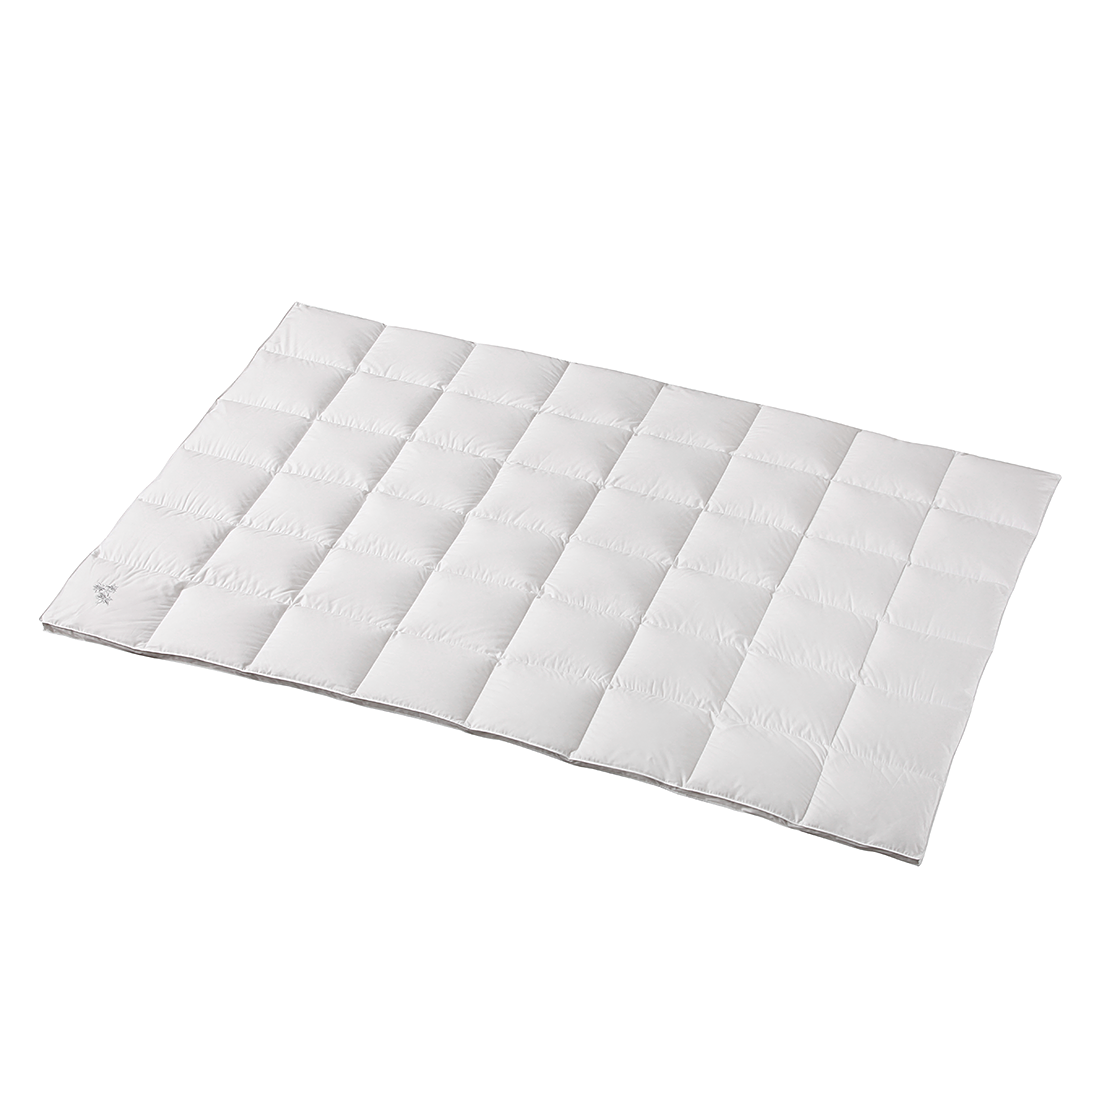 Bettdecke White Goose - 135 x 200 cm - Medium - Kassettendecke,